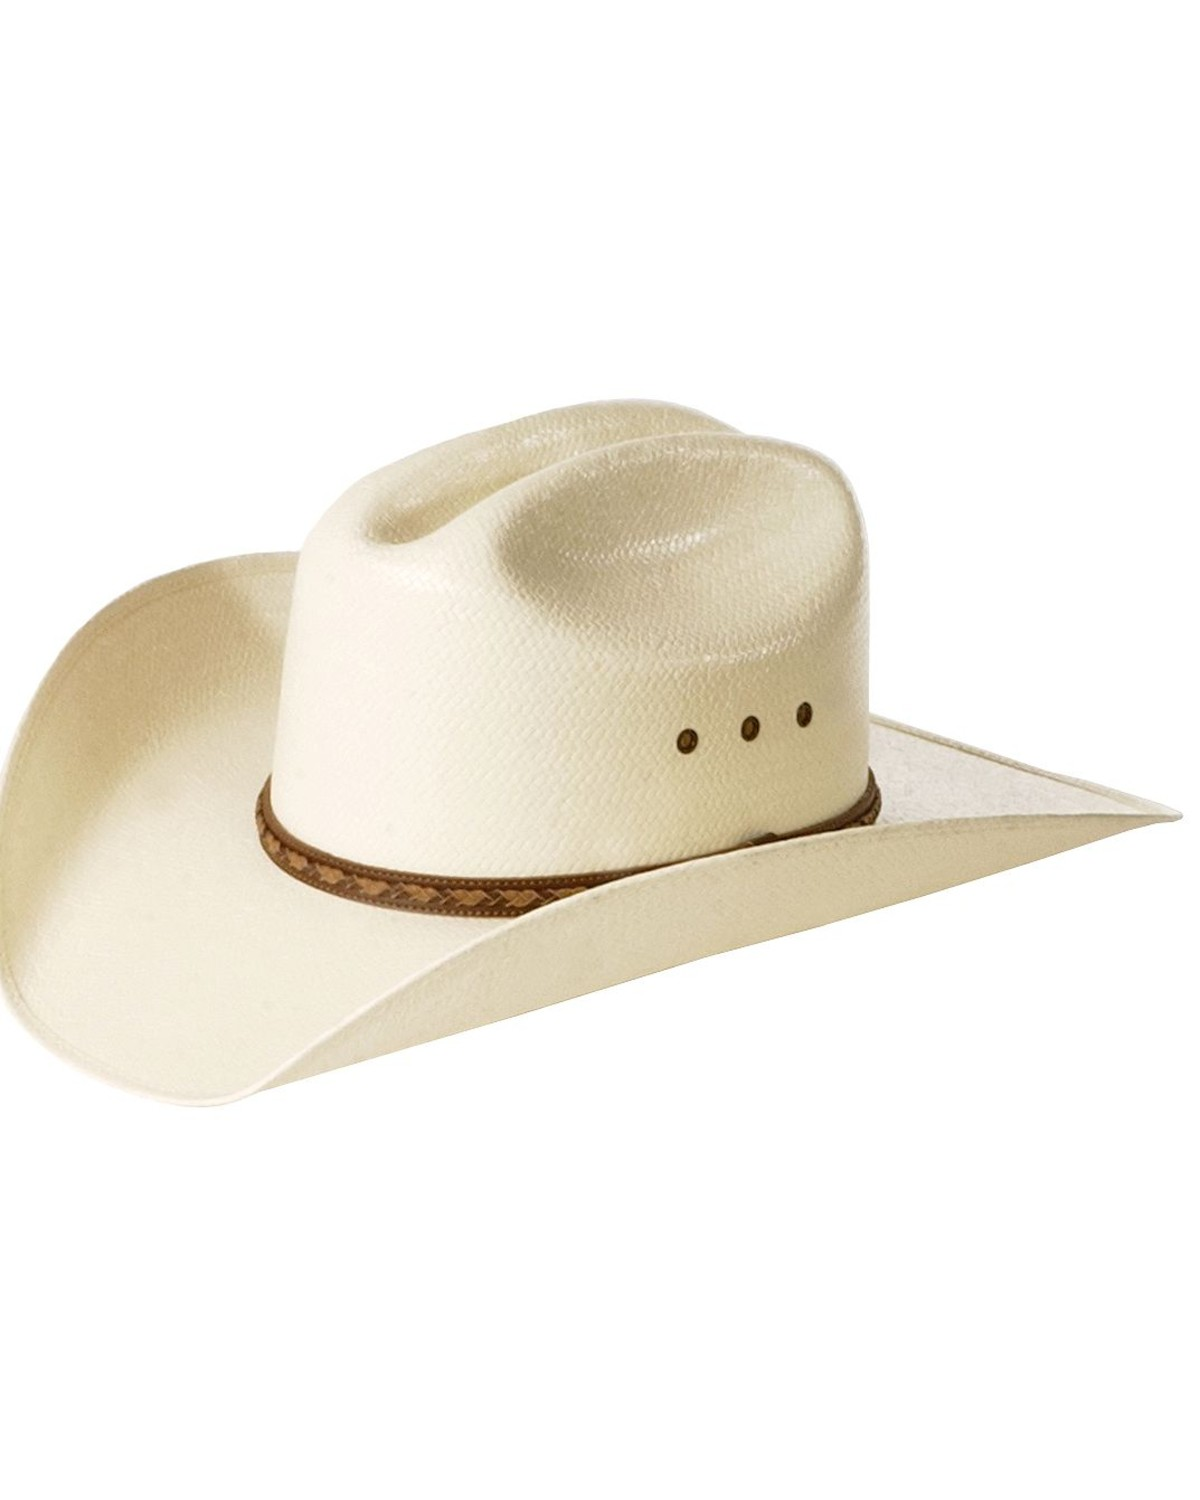 Where To Shop For Home Decor Justin Morgan Straw Cowboy Hat Sheplers